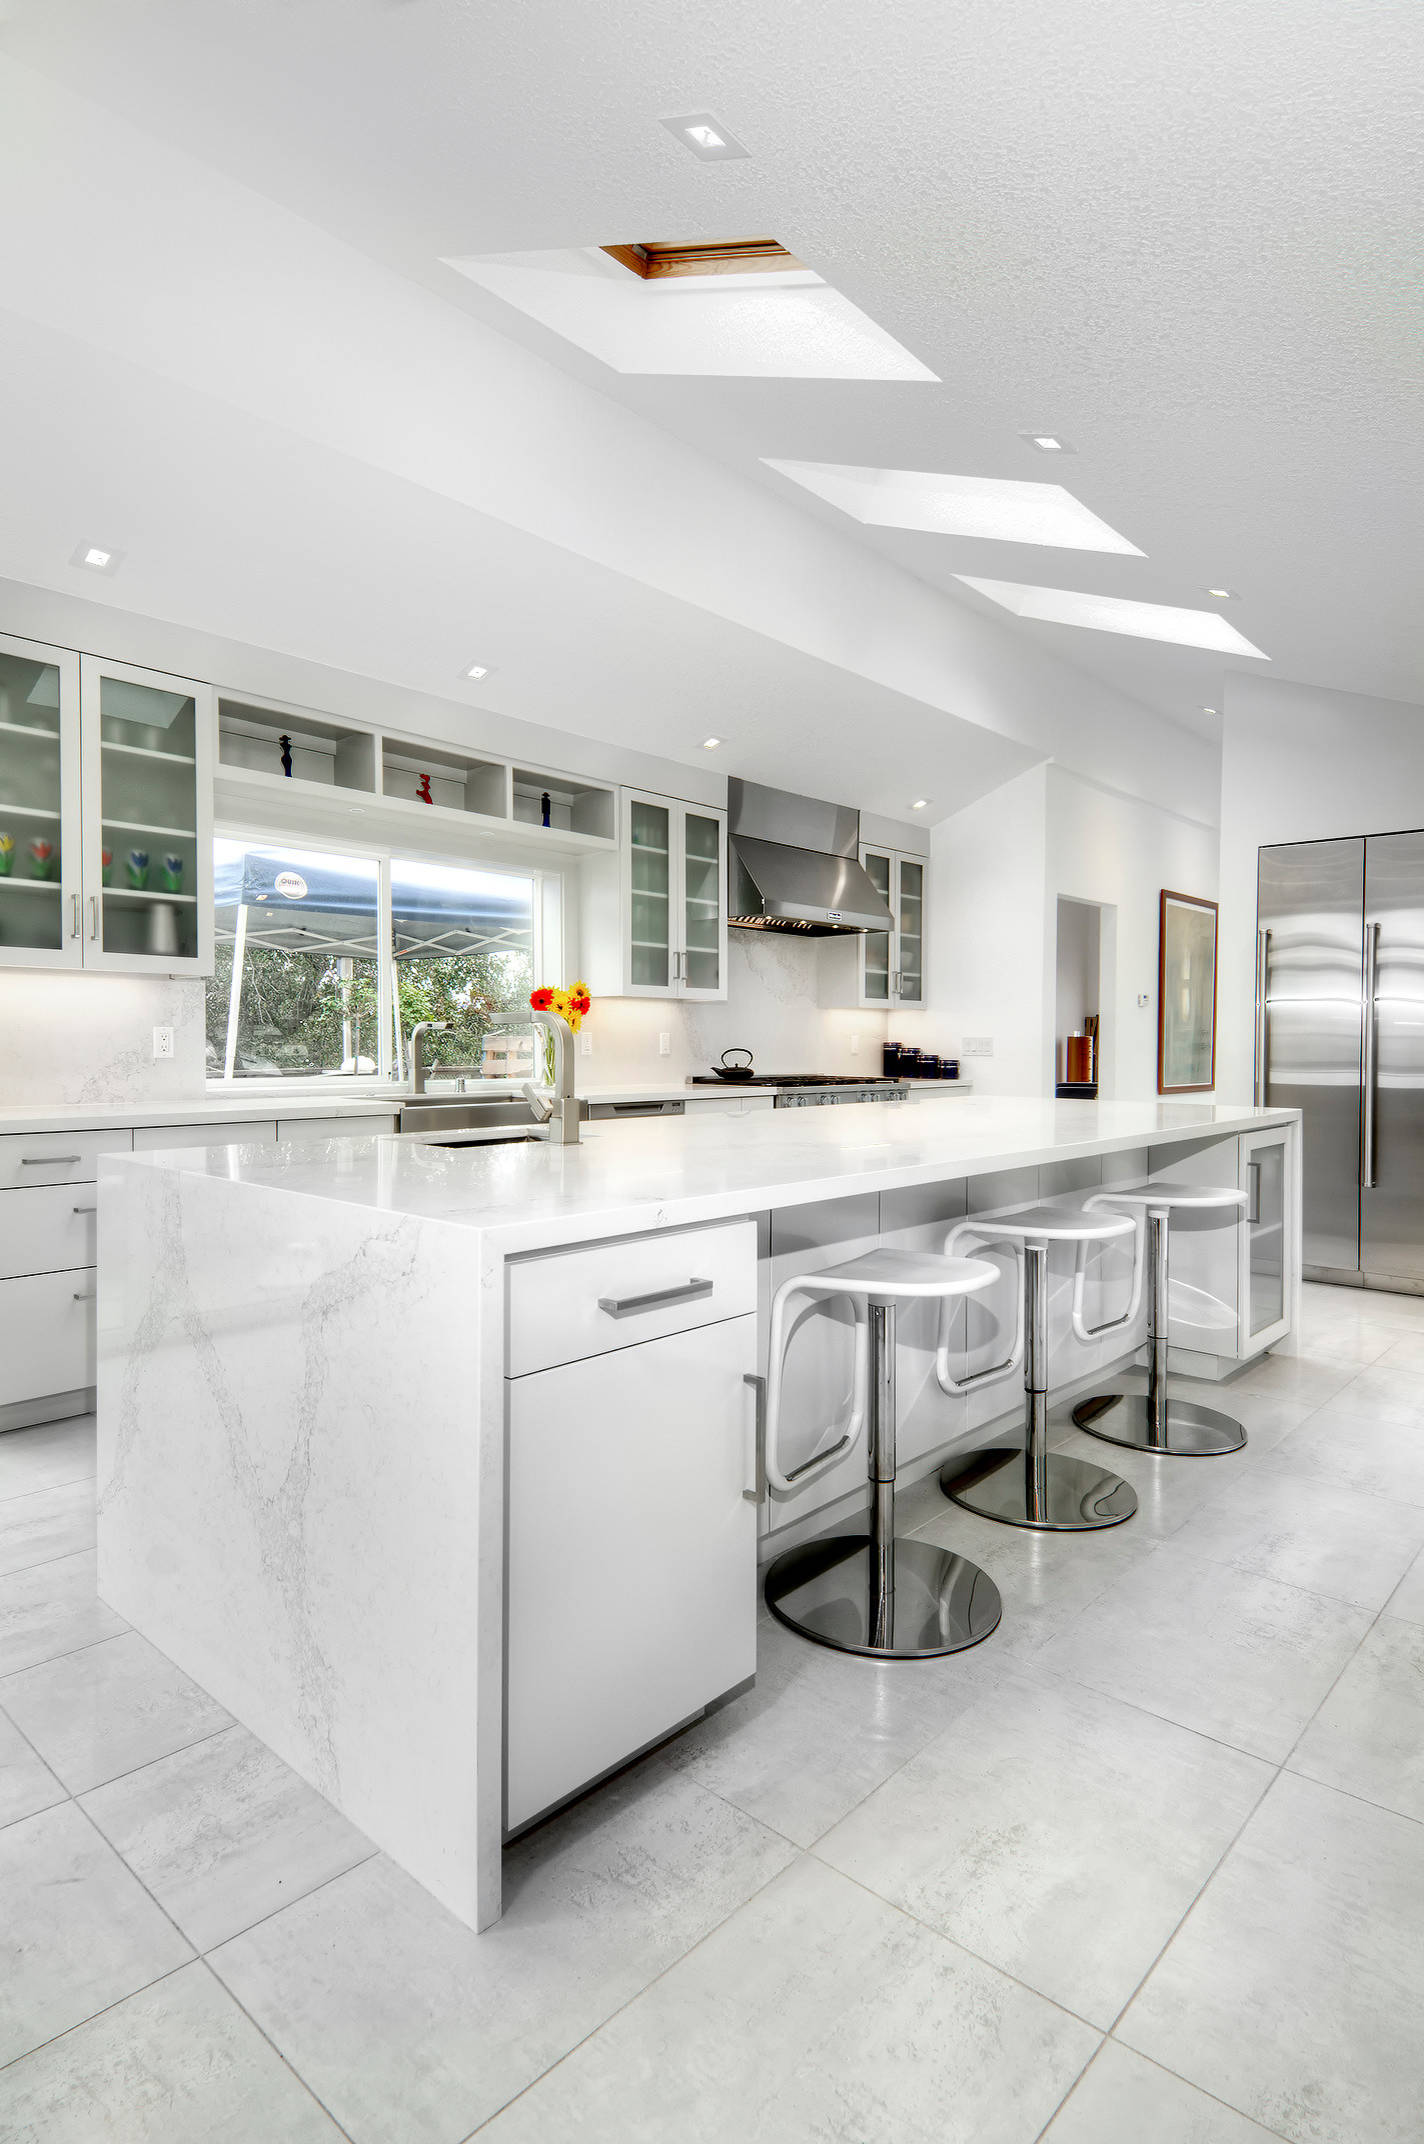 75 Beautiful White Floor Kitchen Pictures & Ideas - January, 2021 | Houzz